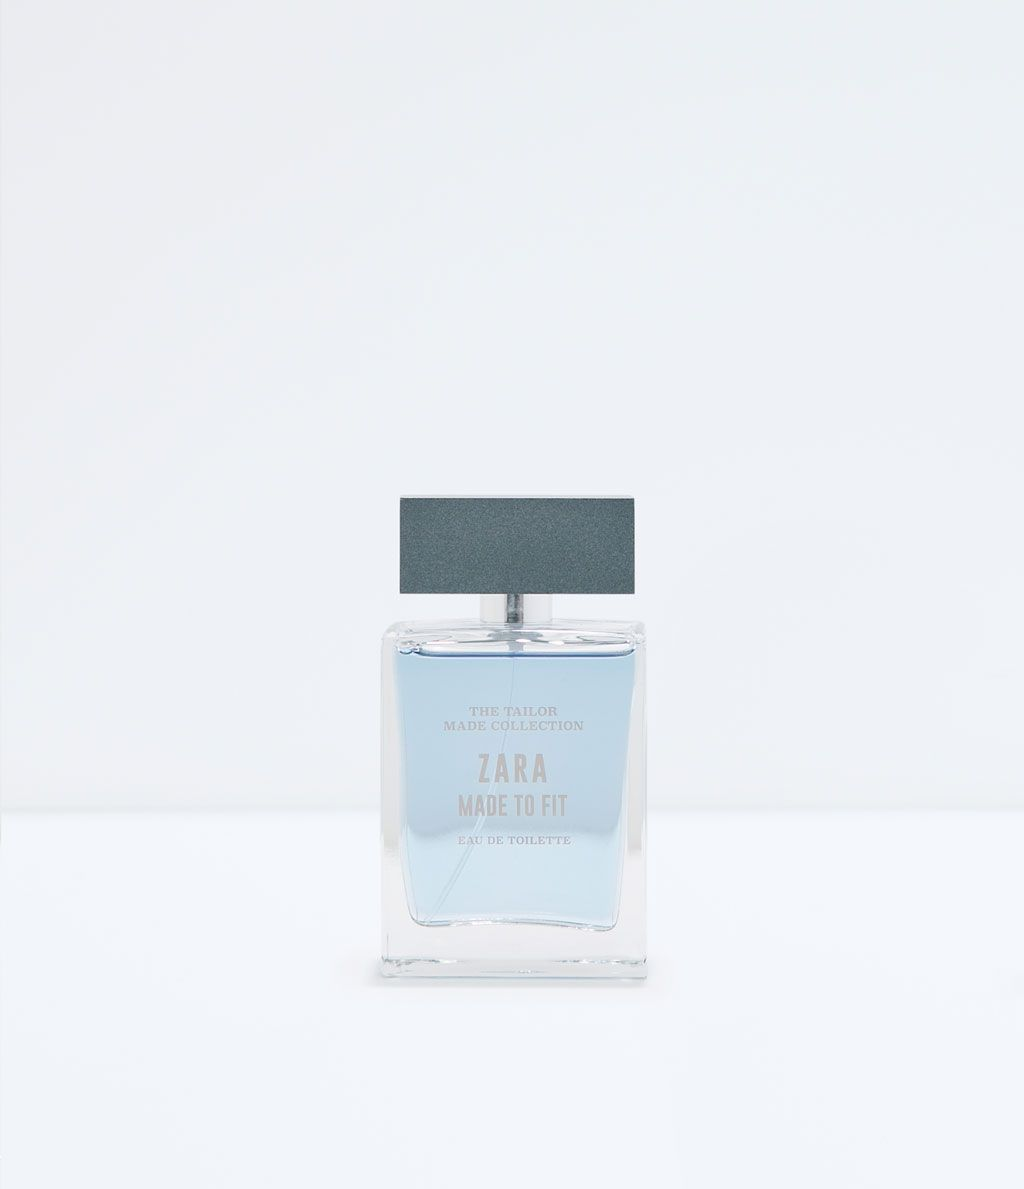 Zara Made To Fit 100 Ml Fragrances Young In 2018 Pinterest Jeanne Arthes Amore Mio Forever For Women Edp